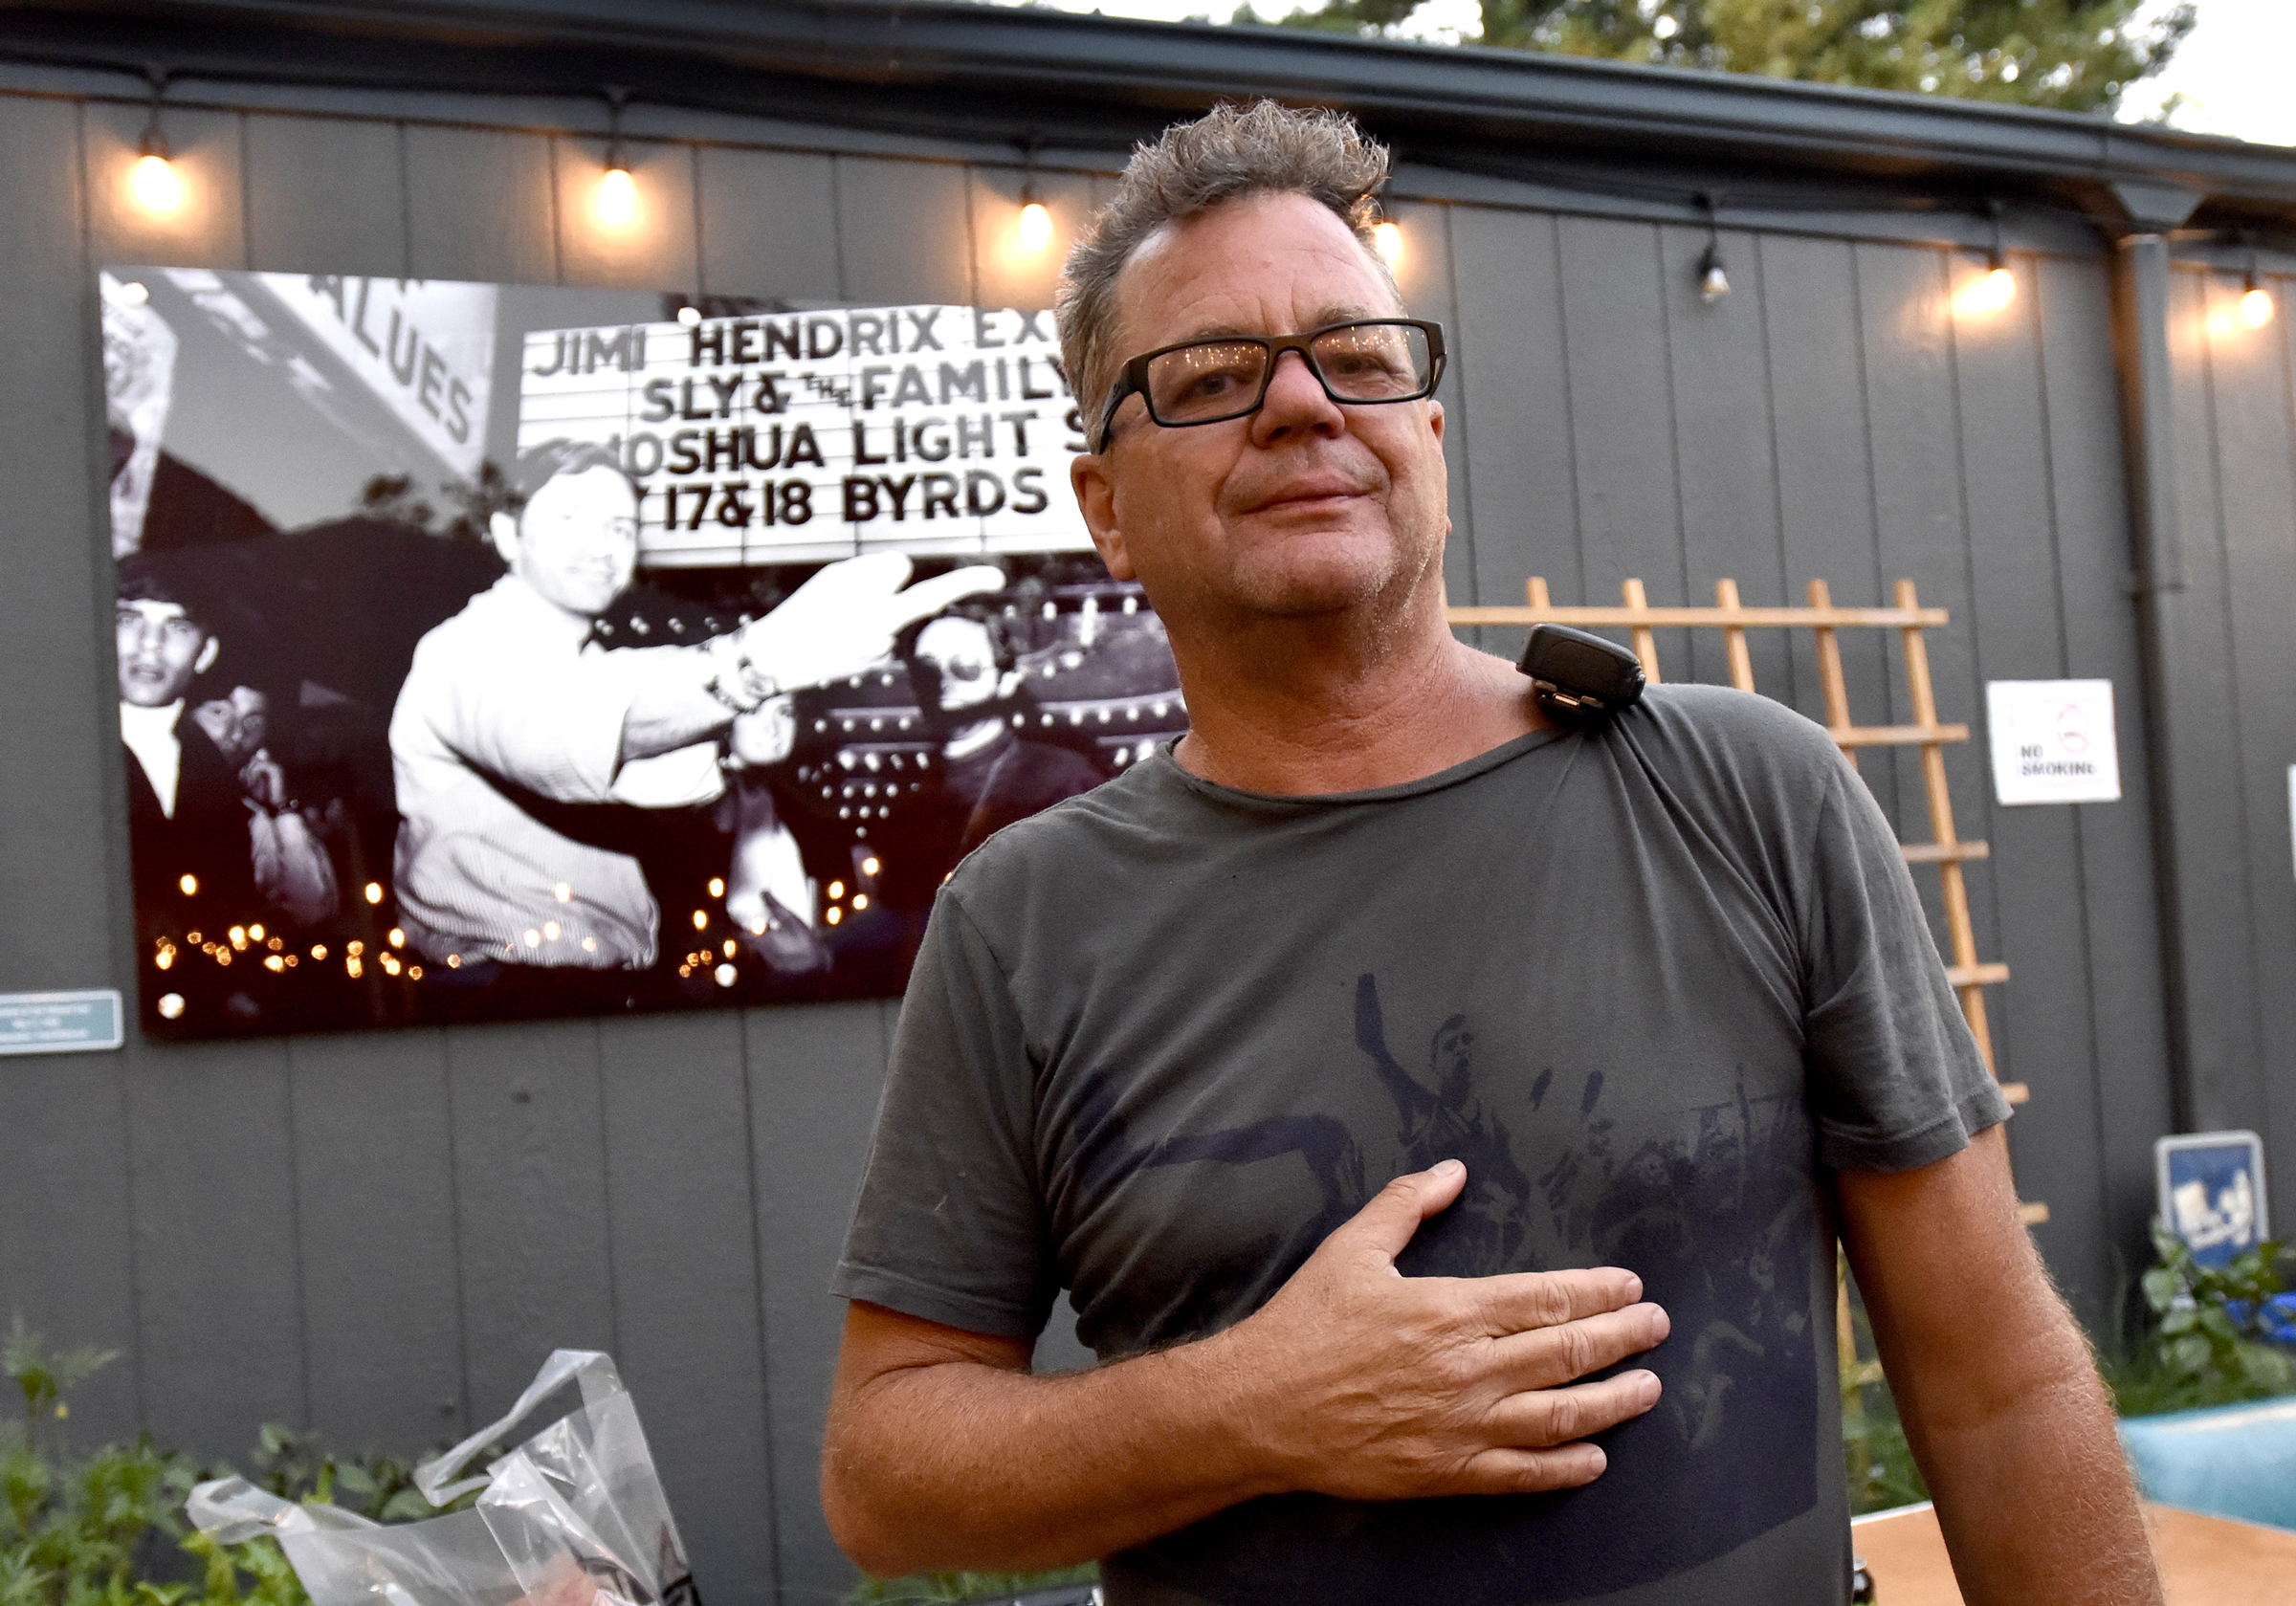 MOUNTAIN VIEW, CALIFORNIA - JULY 20: Founder the Vans Warped Tour Kevin Lyman poses in front of a photograph of Bill Graham at the Vans Warped Tour 25th Anniversary on July 20, 2019 in Mountain View, California. (Photo by Tim Mosenfelder/Getty Images)